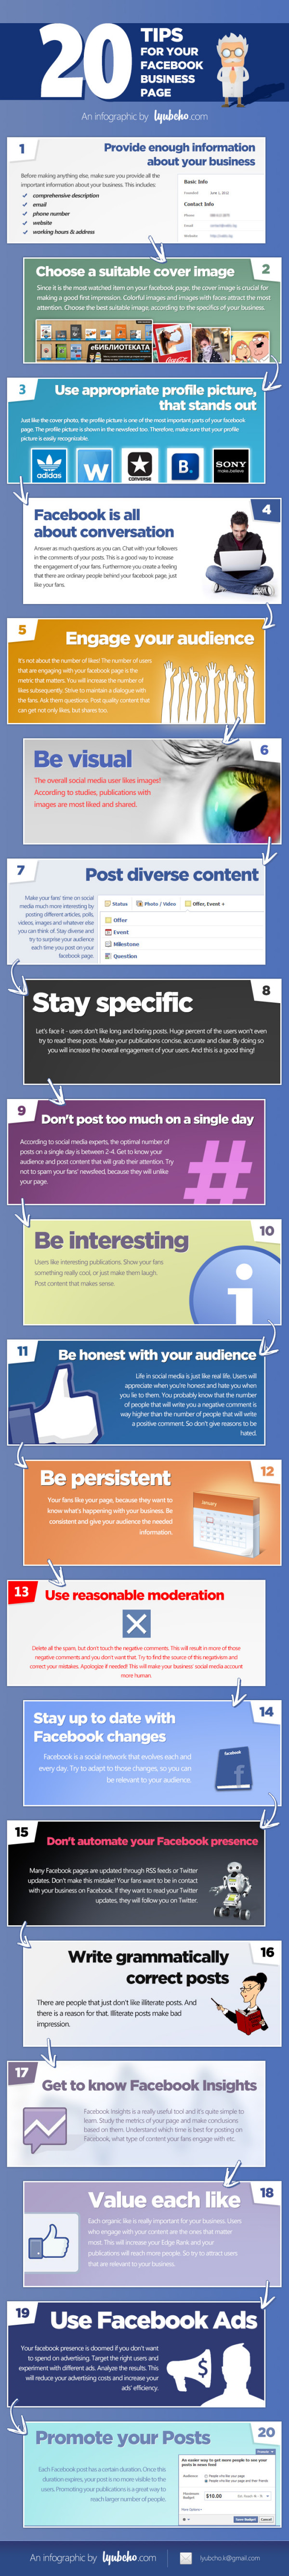 infographic : 20 Essential Tips For Facebook Business Page